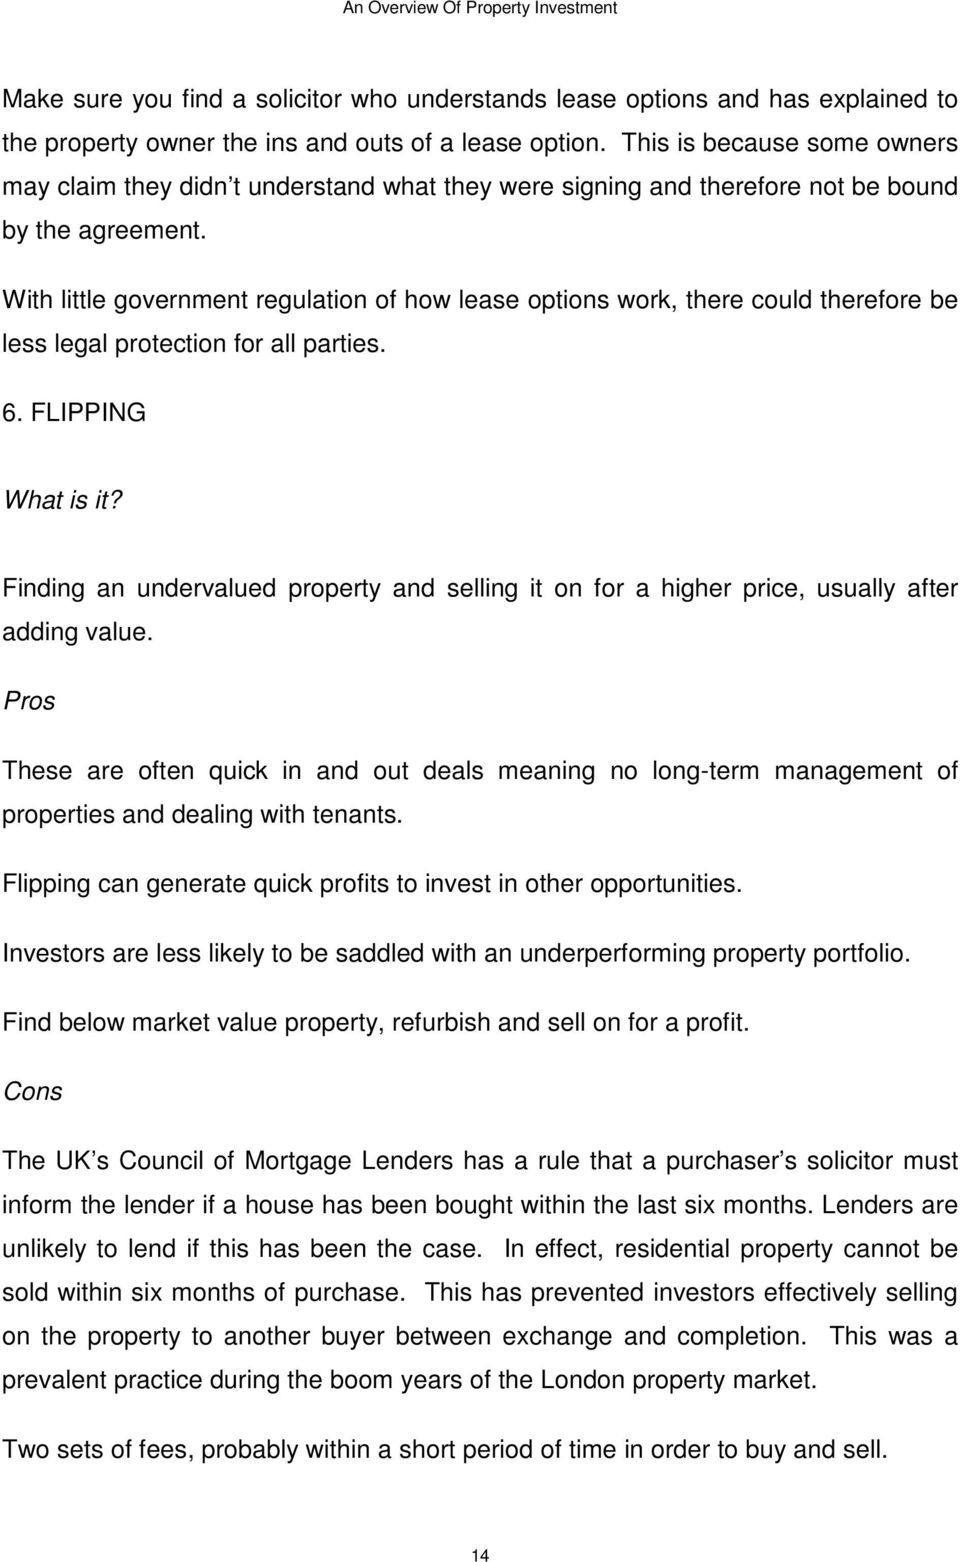 With little government regulation of how lease options work, there could therefore be less legal protection for all parties. 6. FLIPPING What is it?